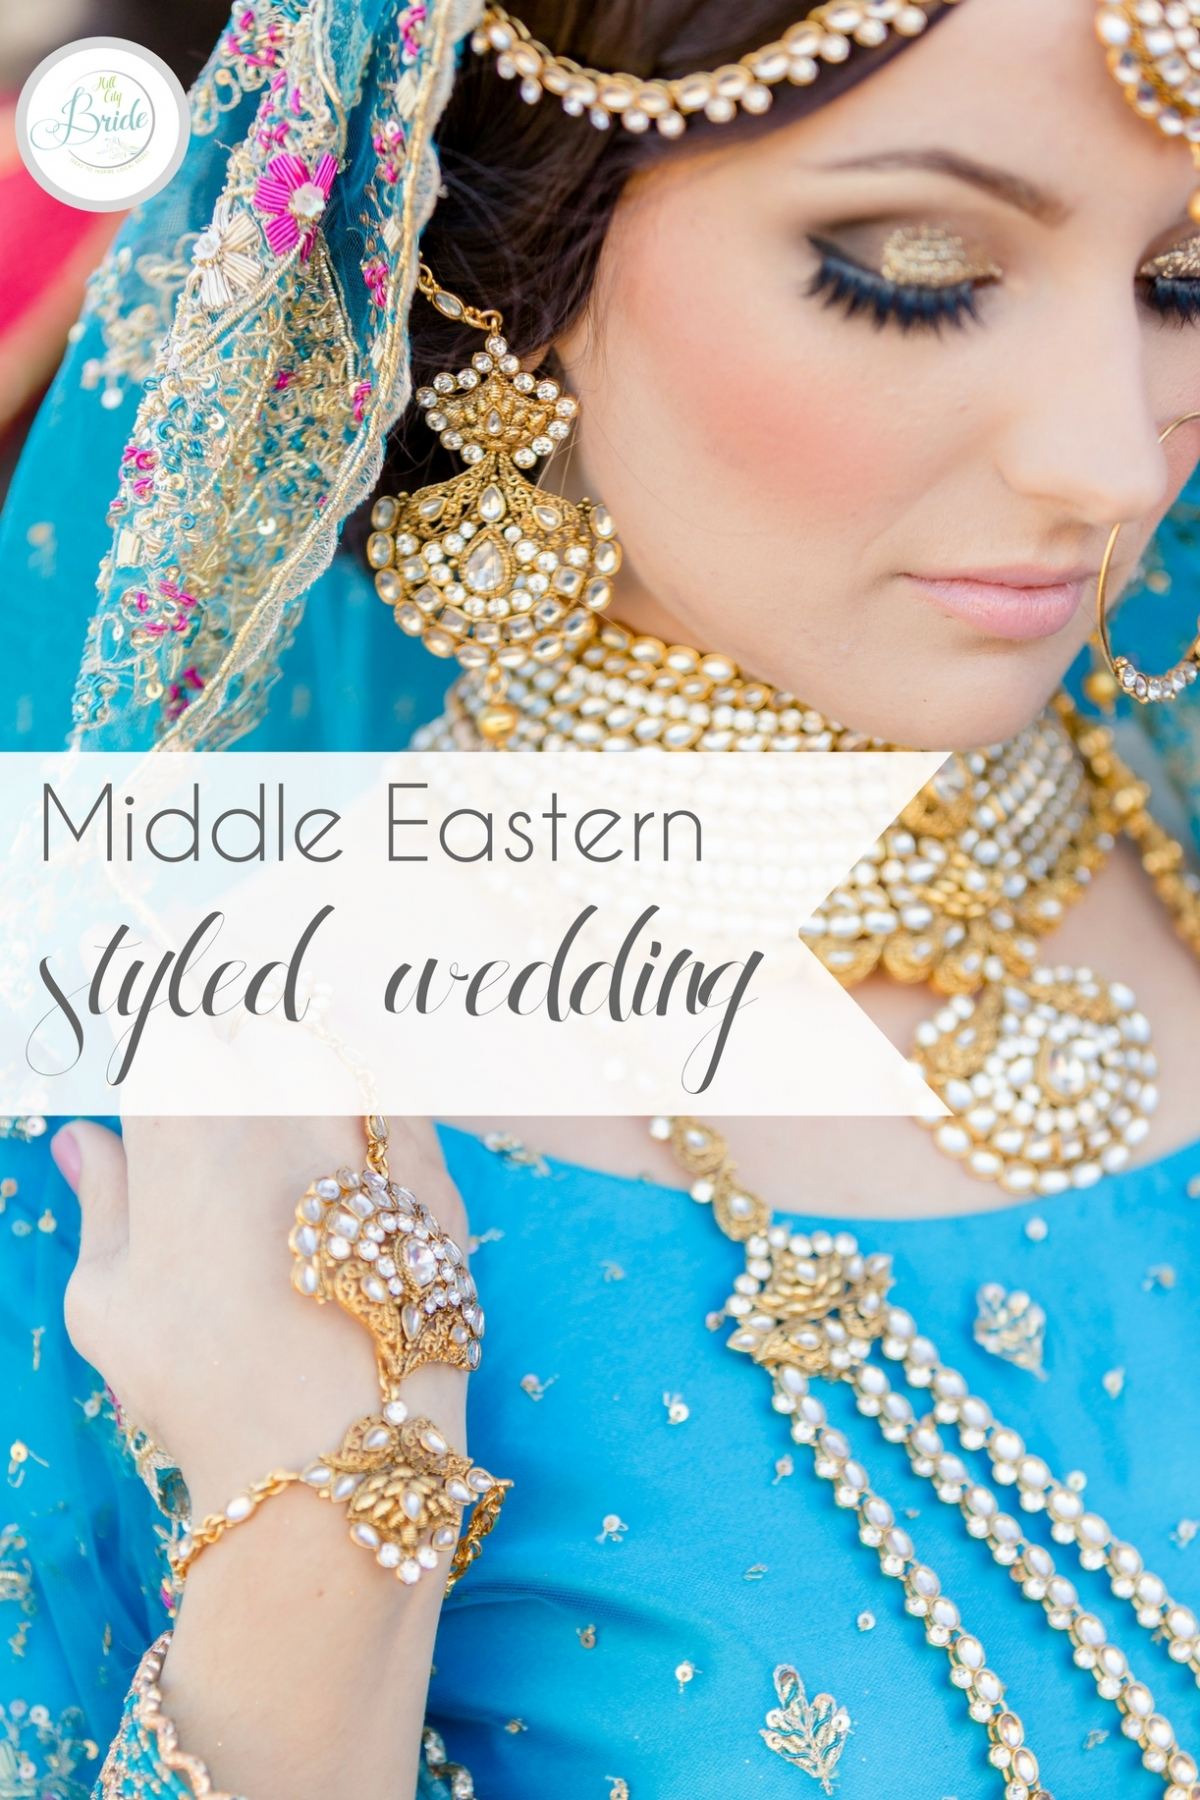 middle eastern singles in hill city Best middle eastern restaurants in san antonio, texas: find tripadvisor traveler reviews of san antonio middle eastern restaurants and search by price, location, and more.